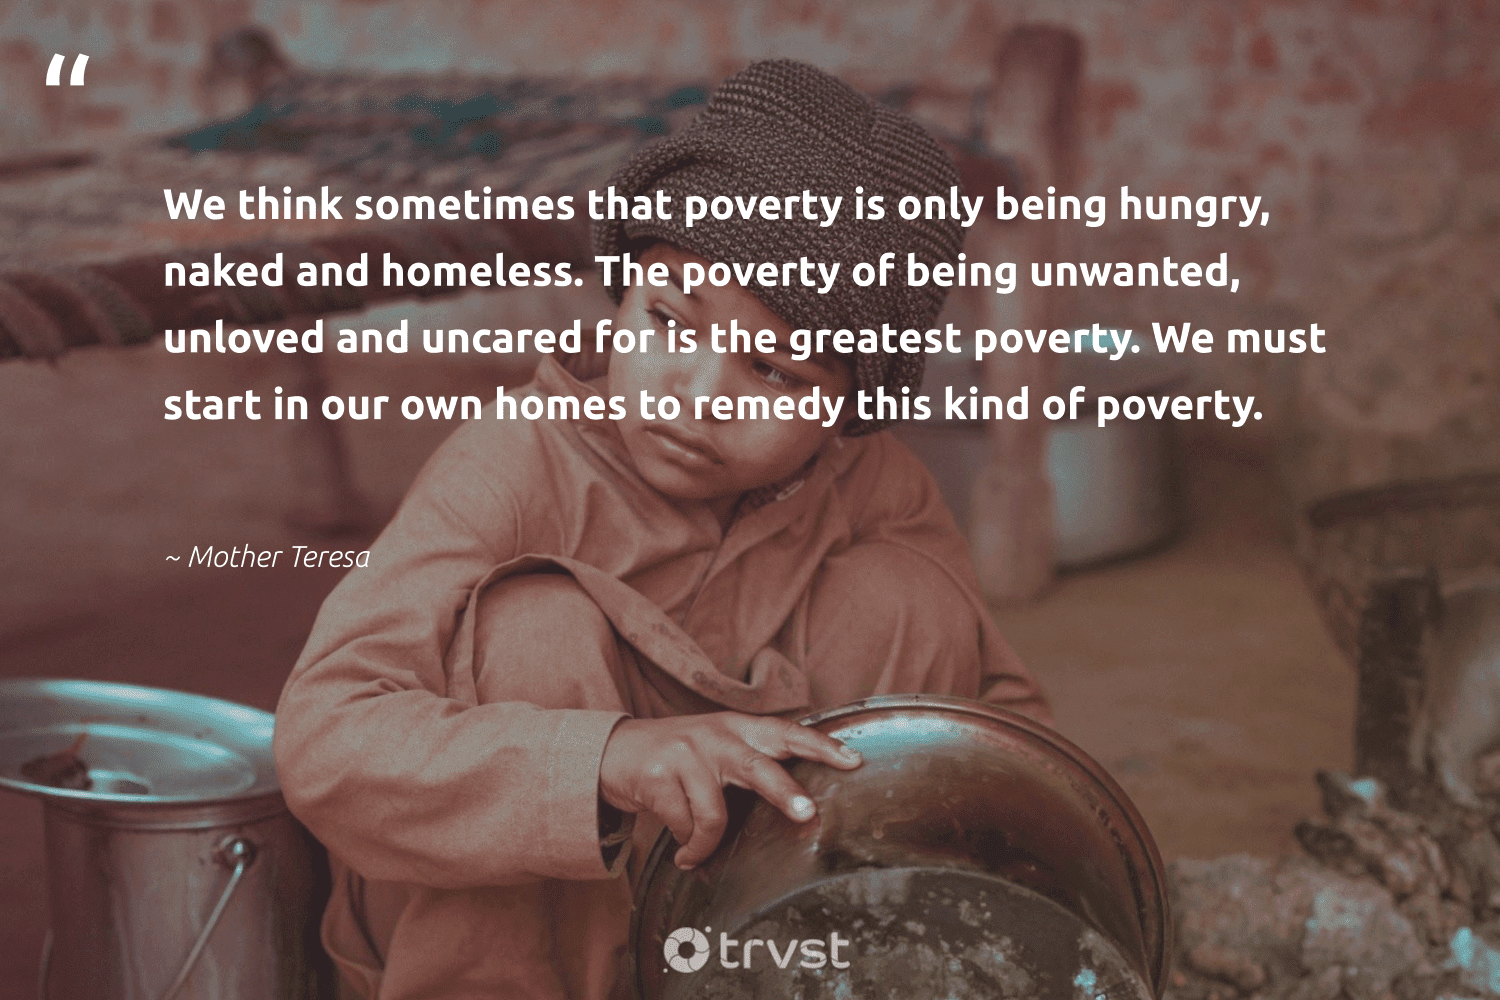 """""""We think sometimes that poverty is only being hungry, naked and homeless. The poverty of being unwanted, unloved and uncared for is the greatest poverty. We must start in our own homes to remedy this kind of poverty.""""  - Mother Teresa #trvst #quotes #poverty #homeless #hungry #endpoverty #inclusion #sustainablefutures #planetearthfirst #equalrights #equalopportunity #dosomething"""